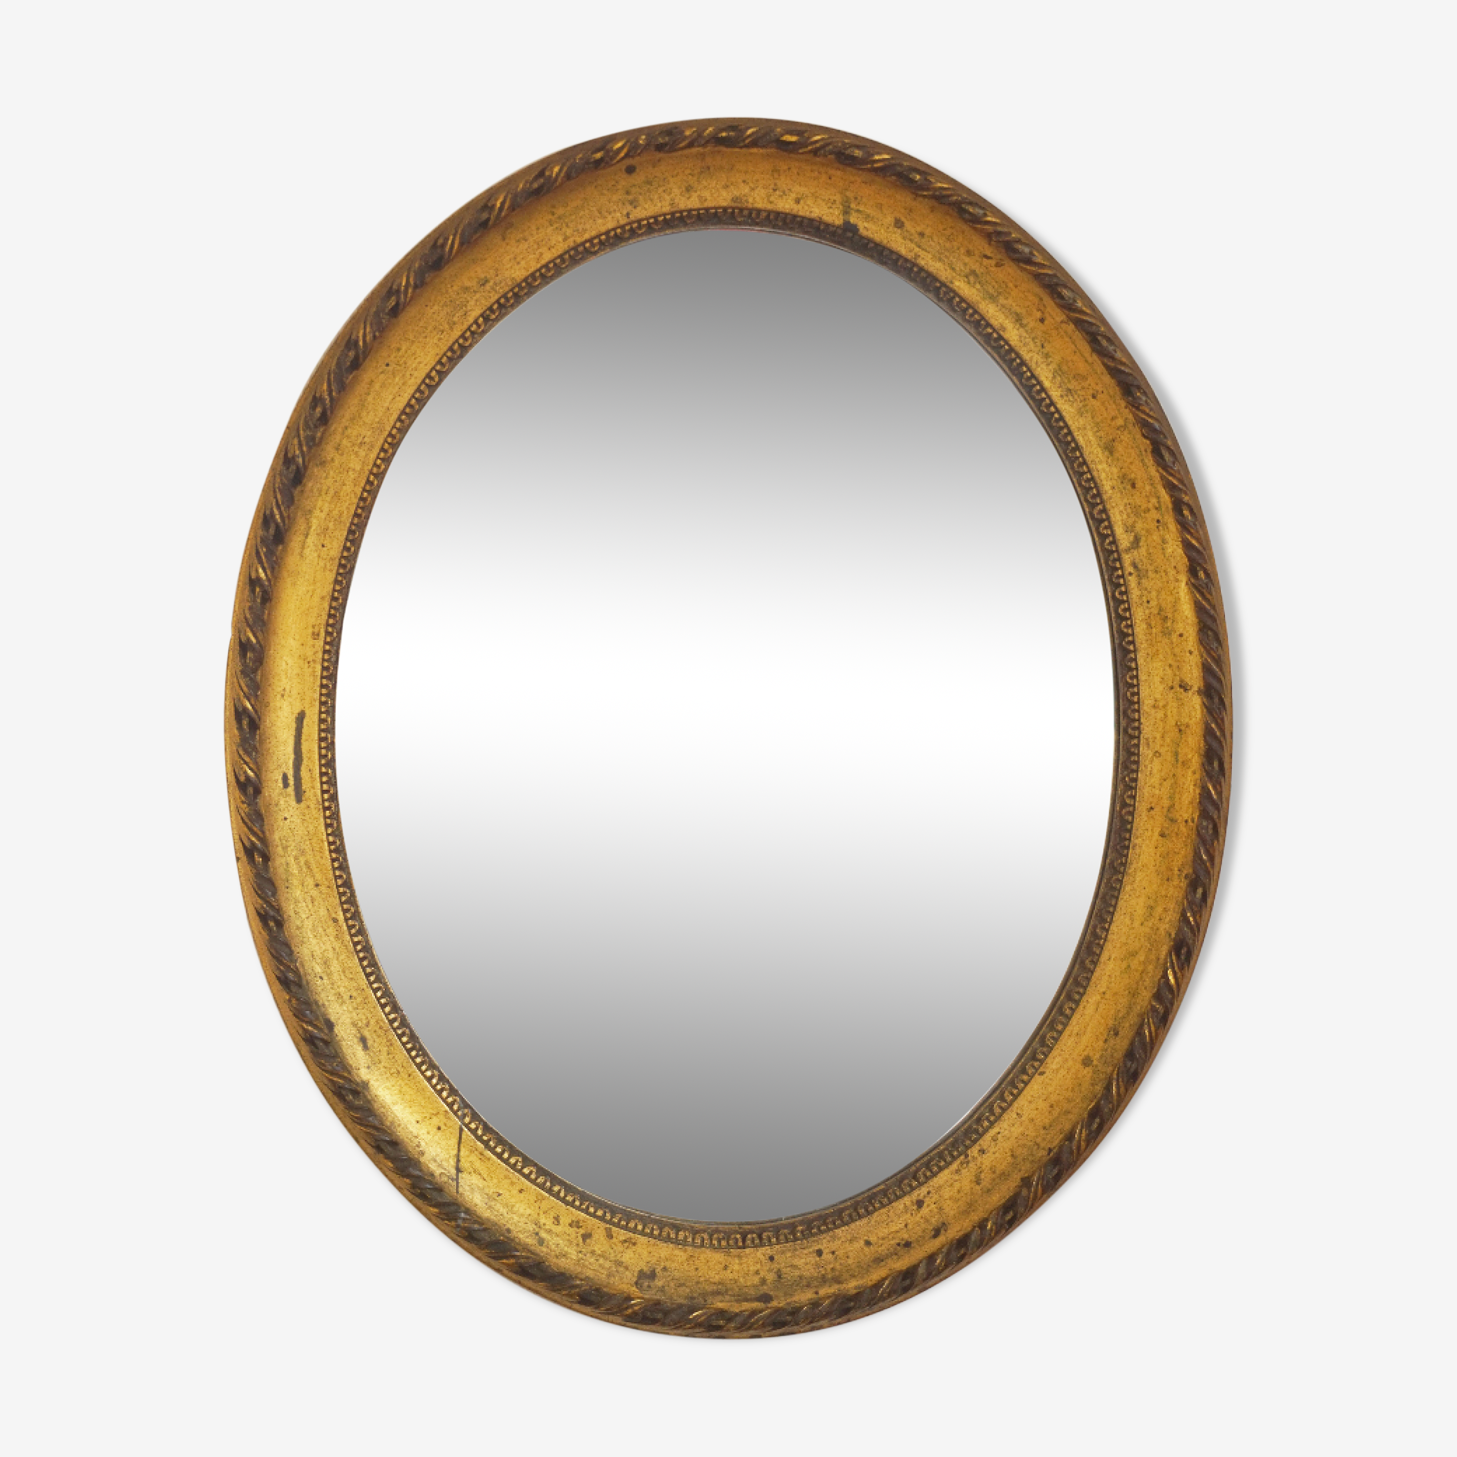 Mirror former oval gold classic 58x48cm